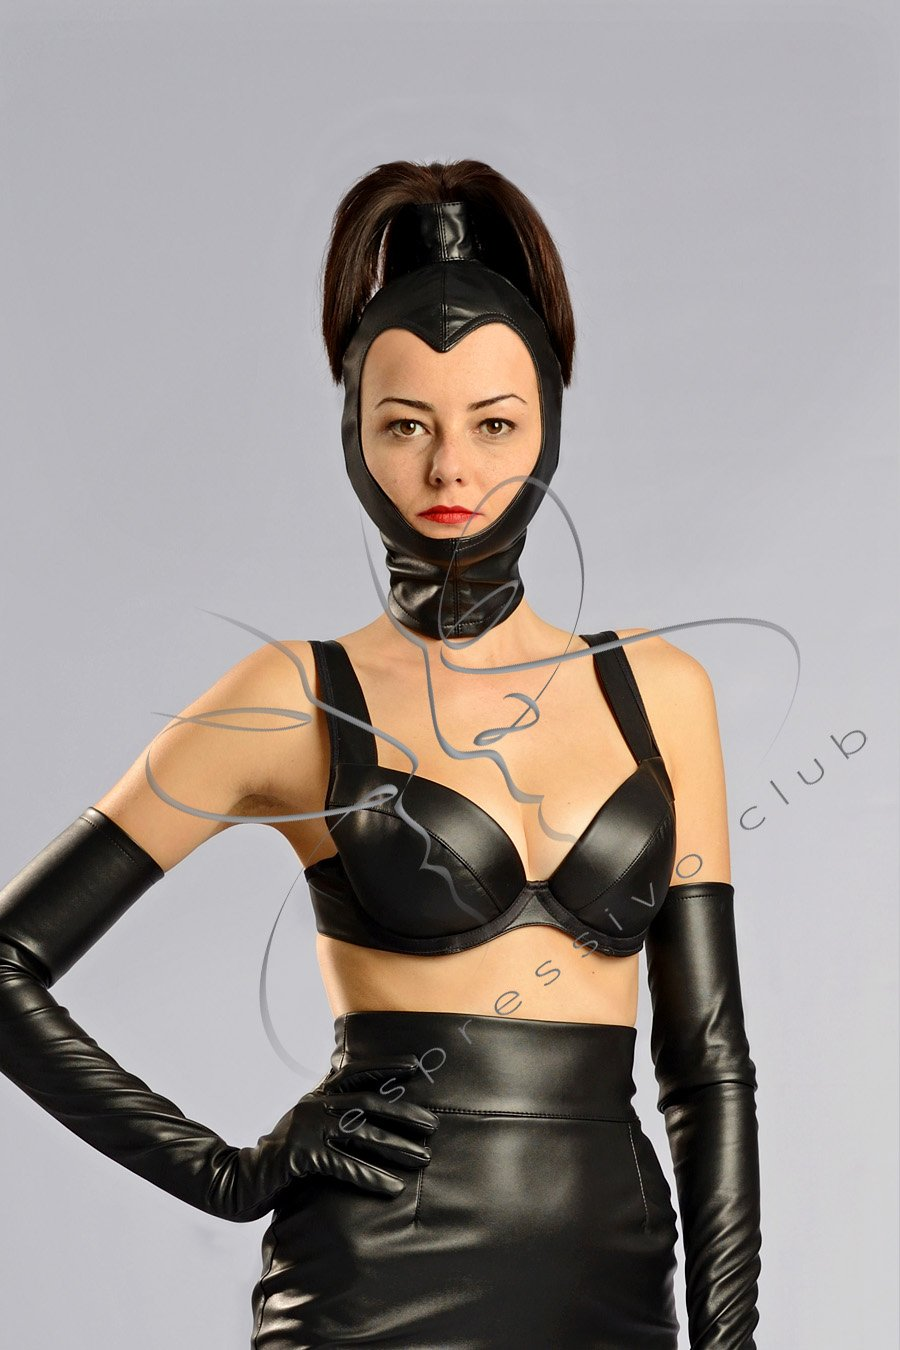 Trifles! Dominatrix leather mistress ideal answer